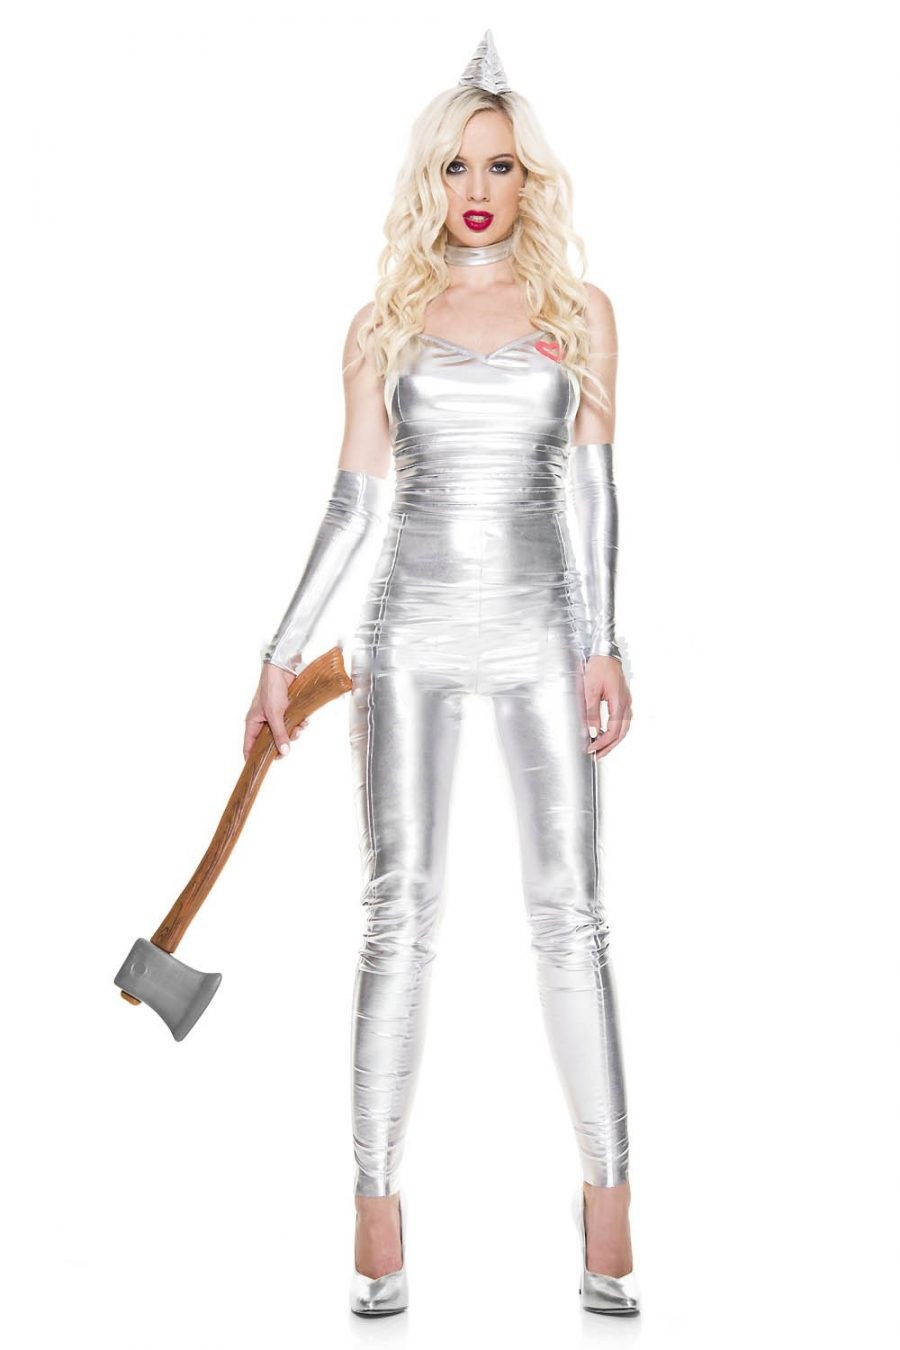 Tin Lady silver catsuit